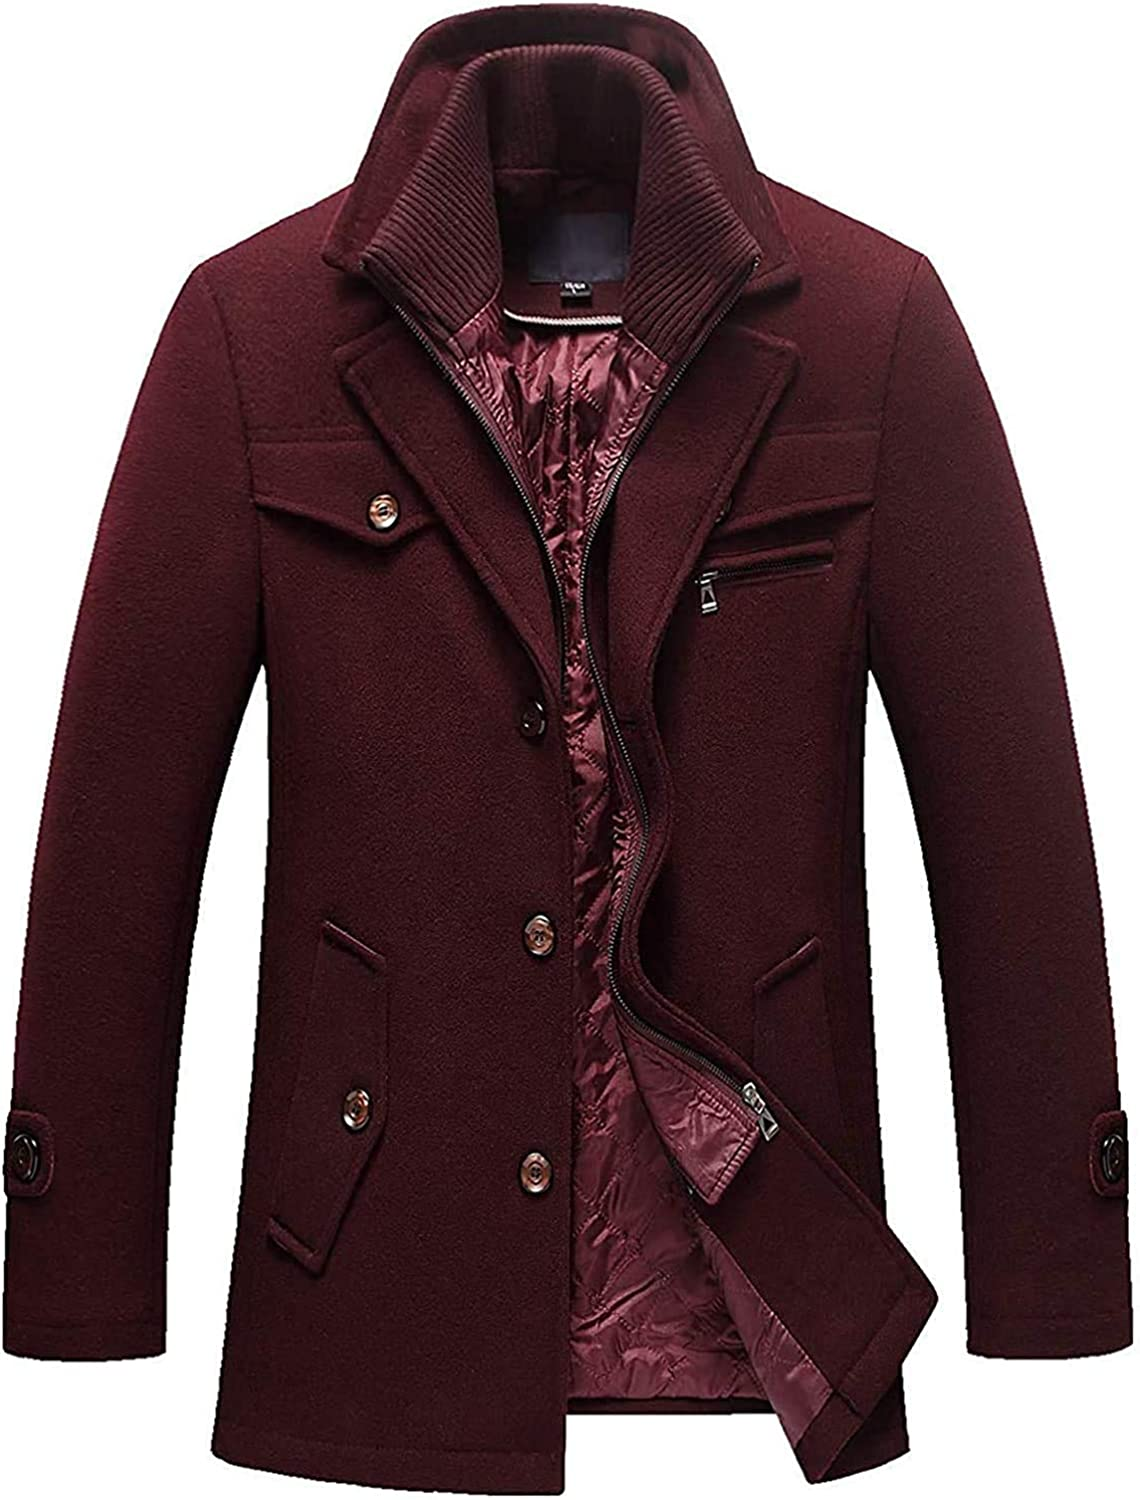 Hoolep Men's Gentle Layered Collar Single Breasted Quilted Lined Wool Blend Pea Coats